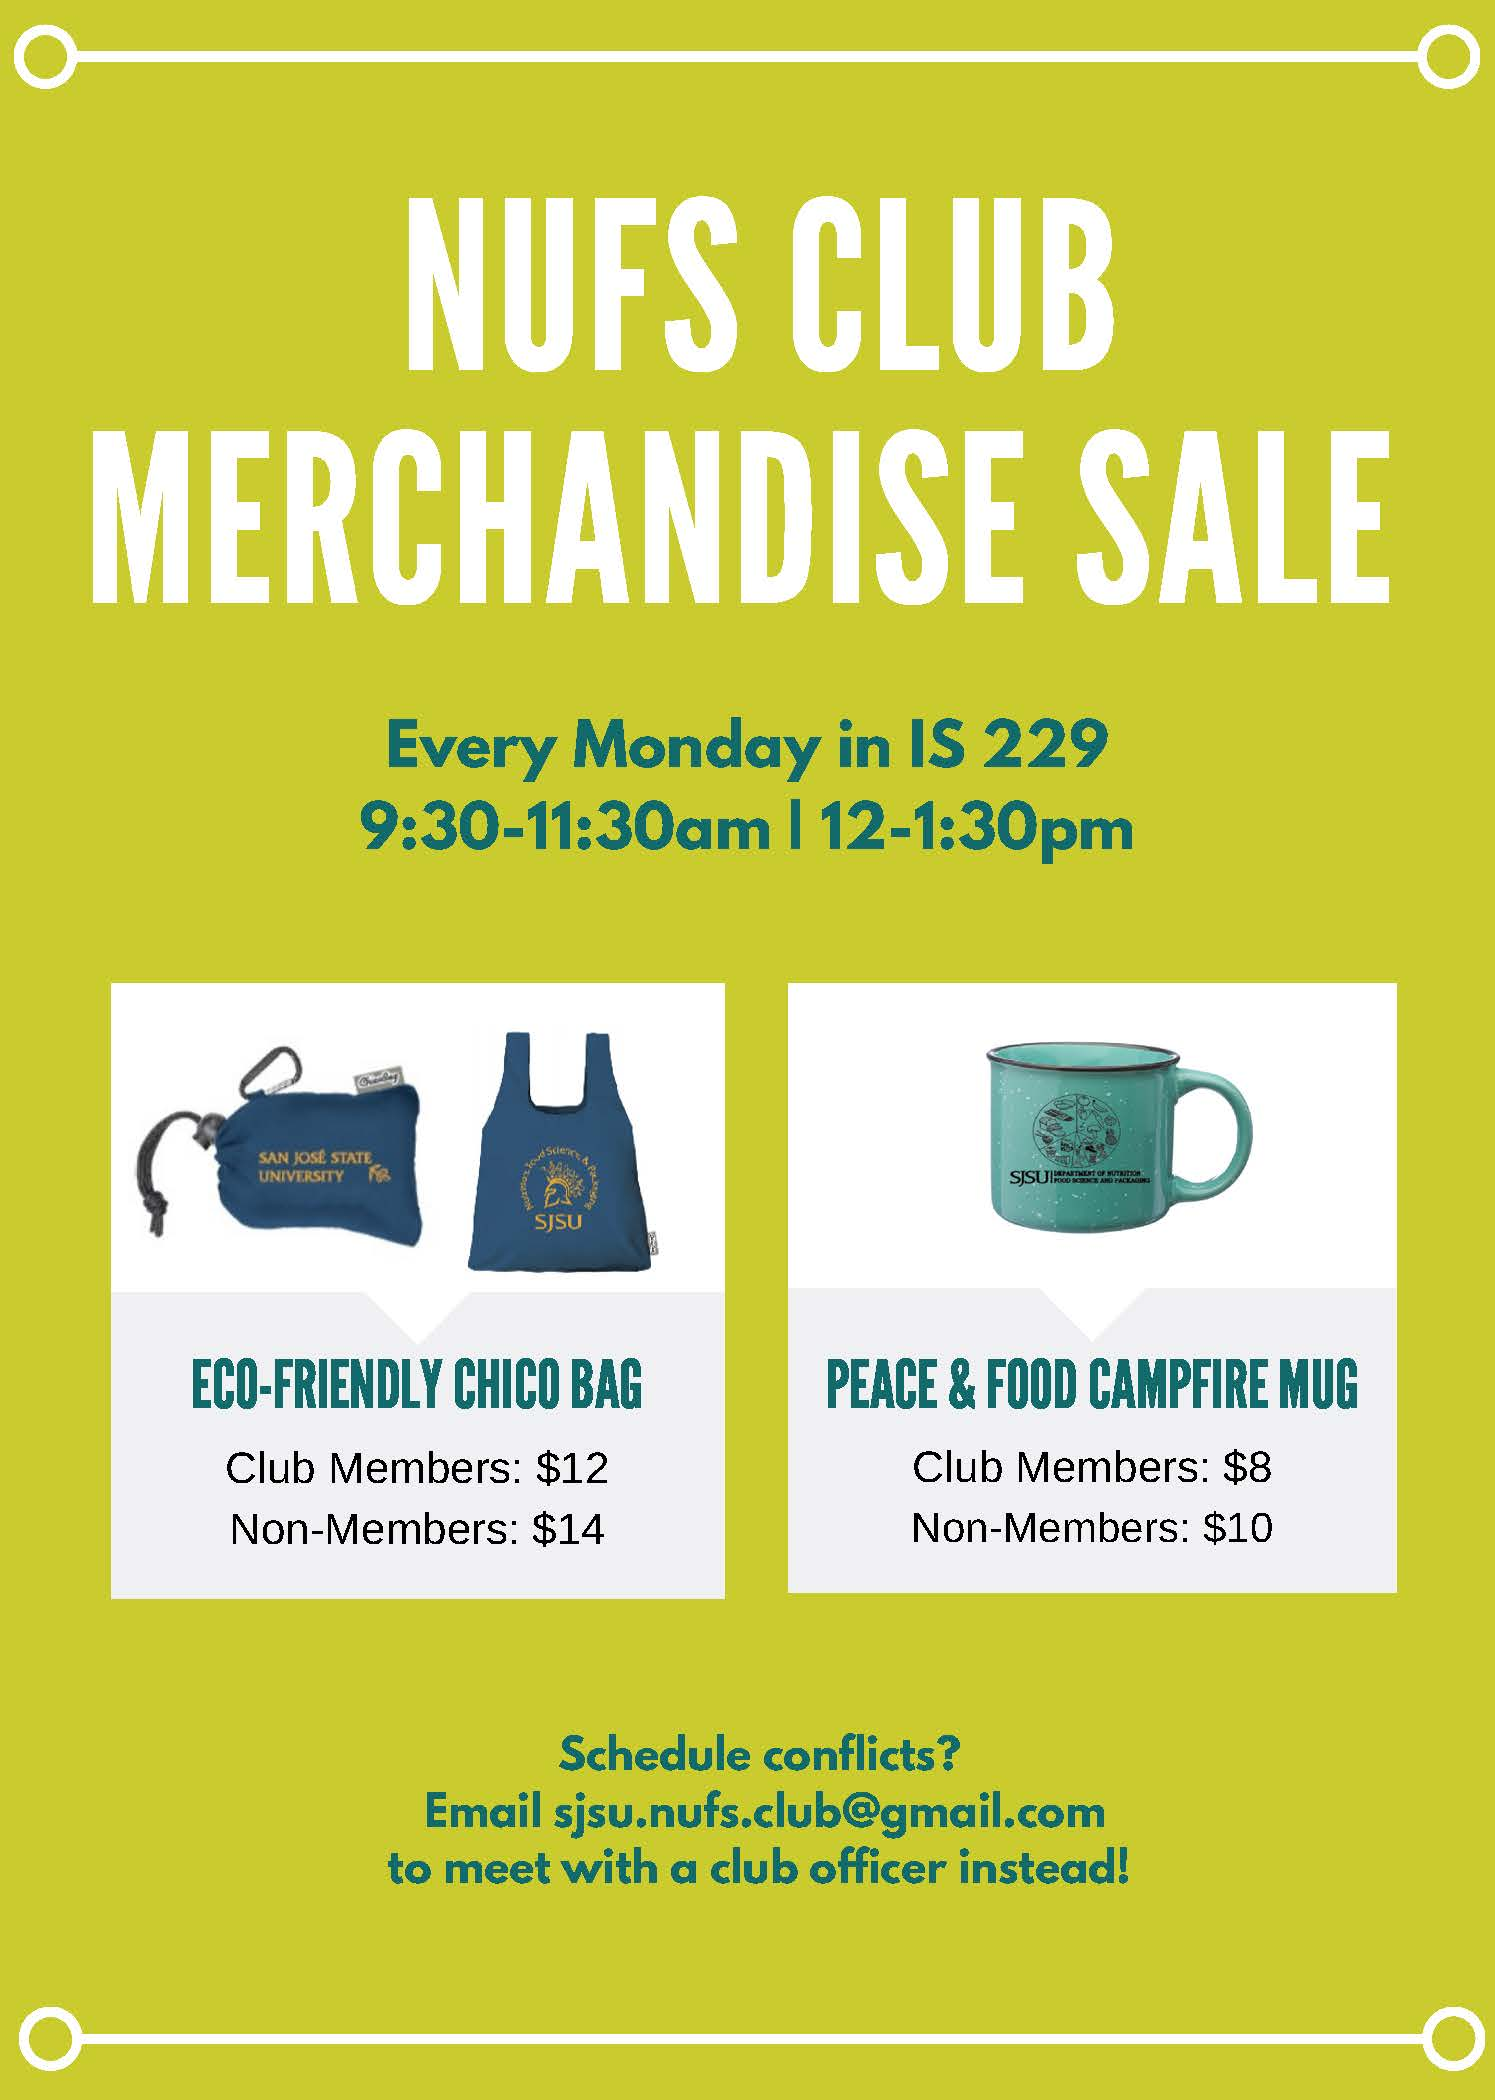 Nutrition and Food Science Club merchandise sale. Every Monday in I.S. 229 9:30 to 11:30 a.m and 12 to 1:30 p.m.